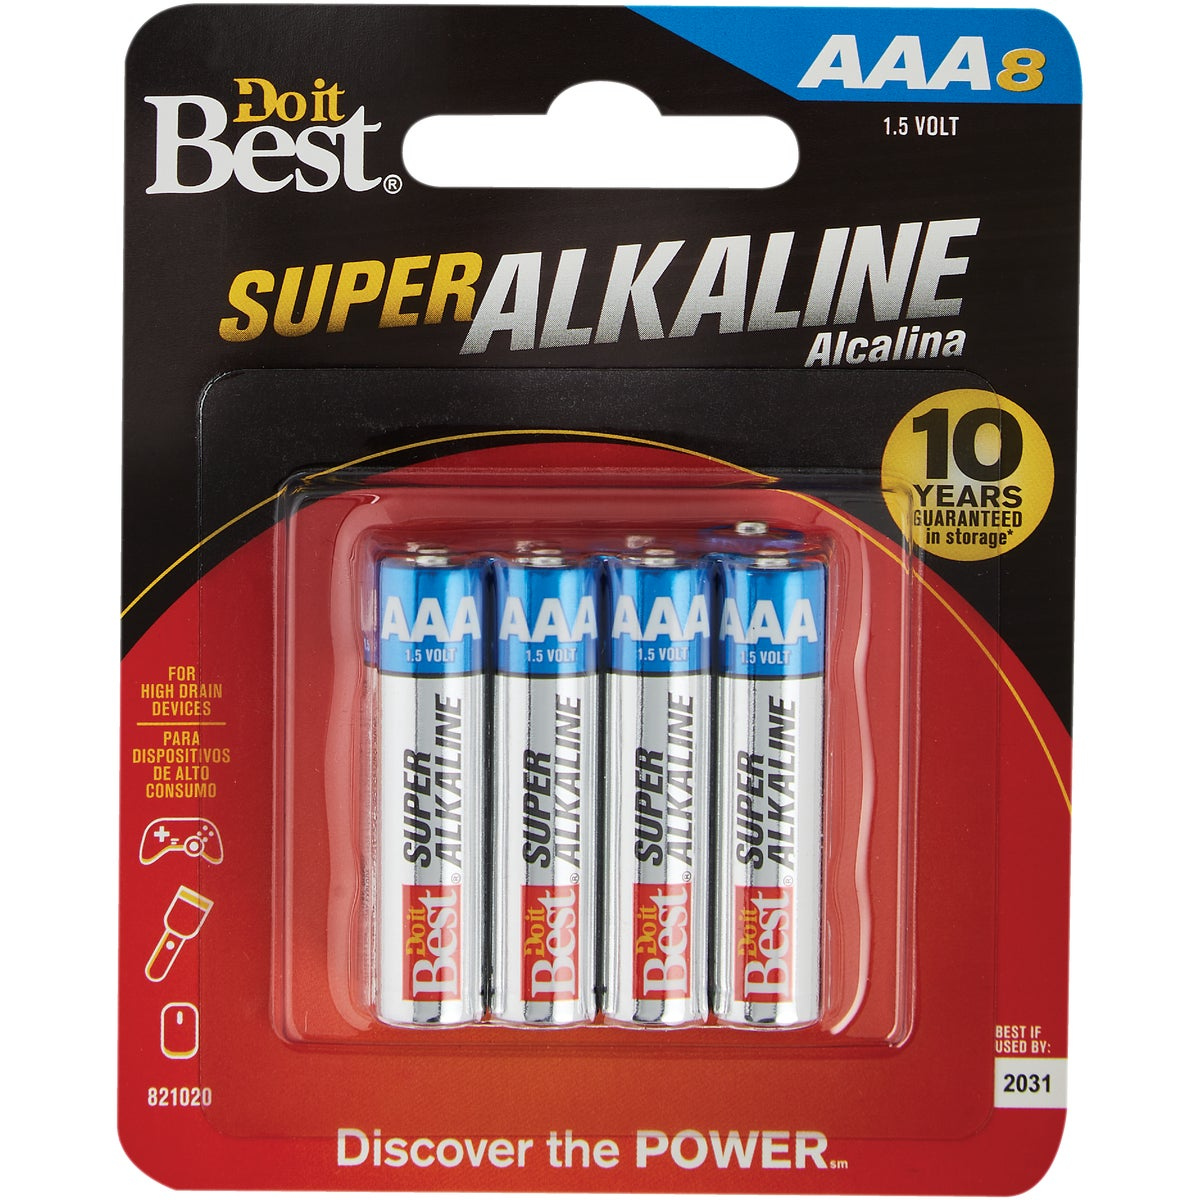 8PK AAA ALKALINE BATTERY - DIB824-8CF by Ray O Vac